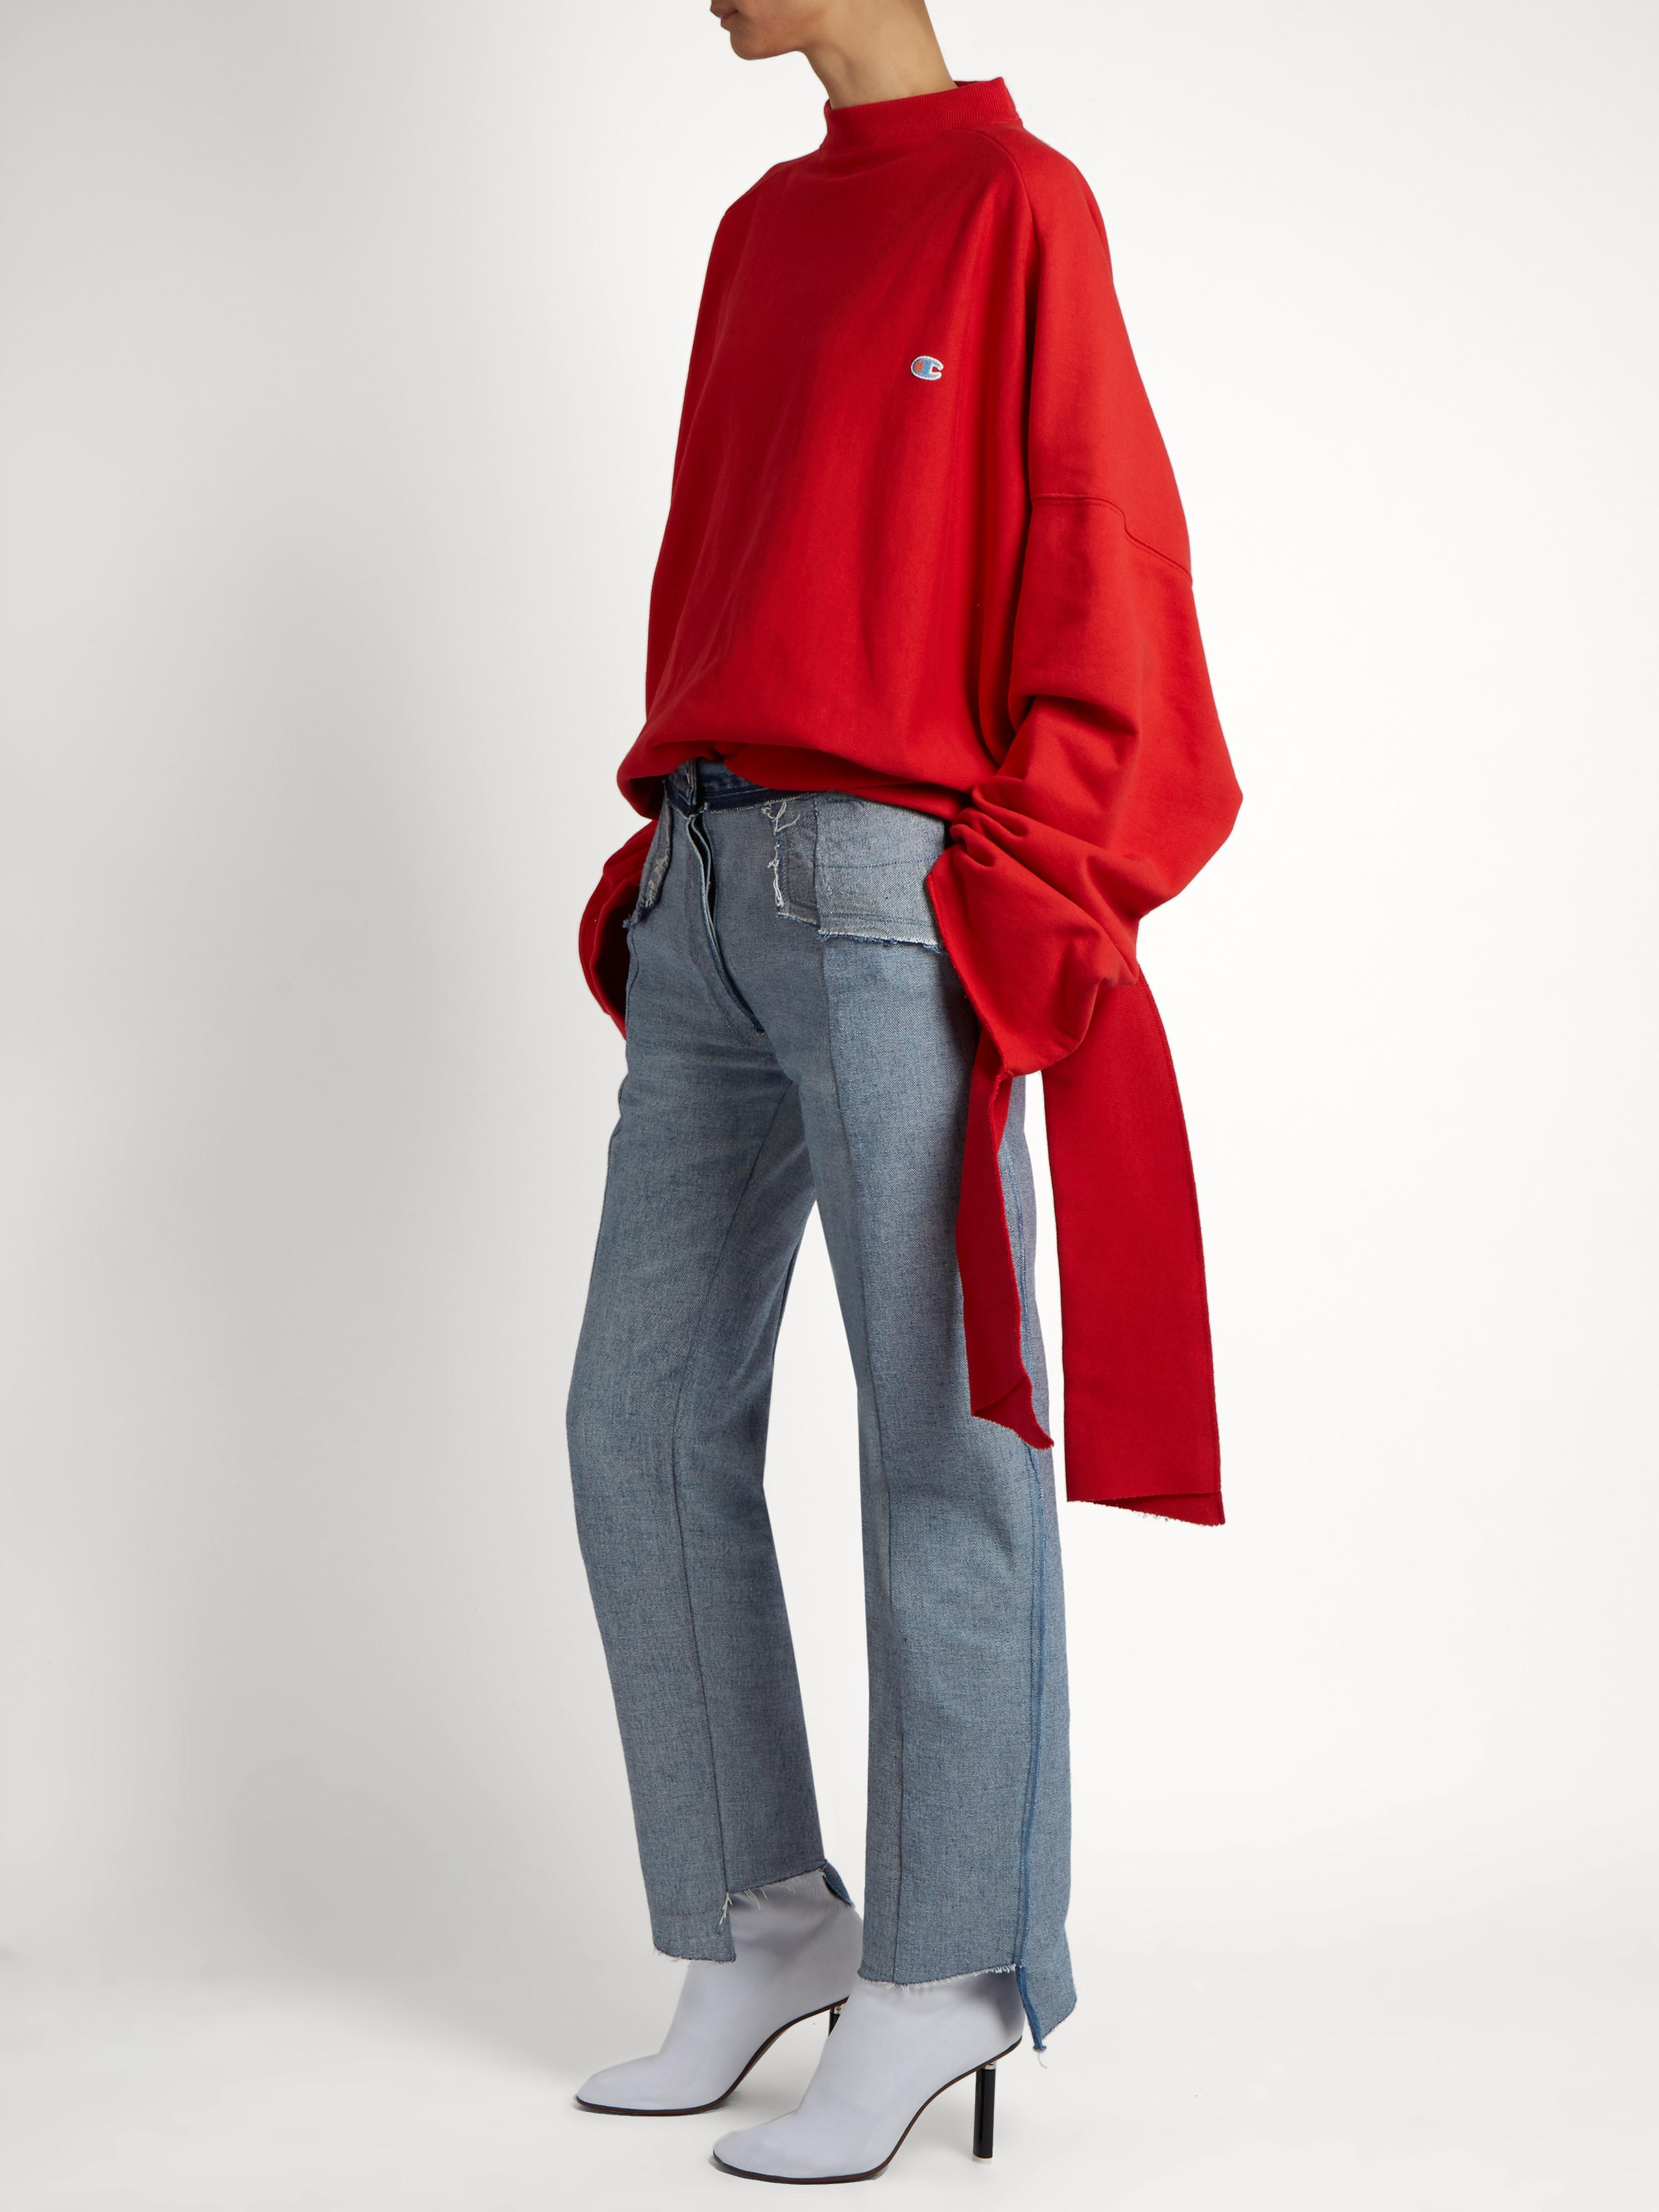 f599c95ce3a2 Lyst - Vetements X Champion Oversized Cotton-blend Sweatshirt in Red